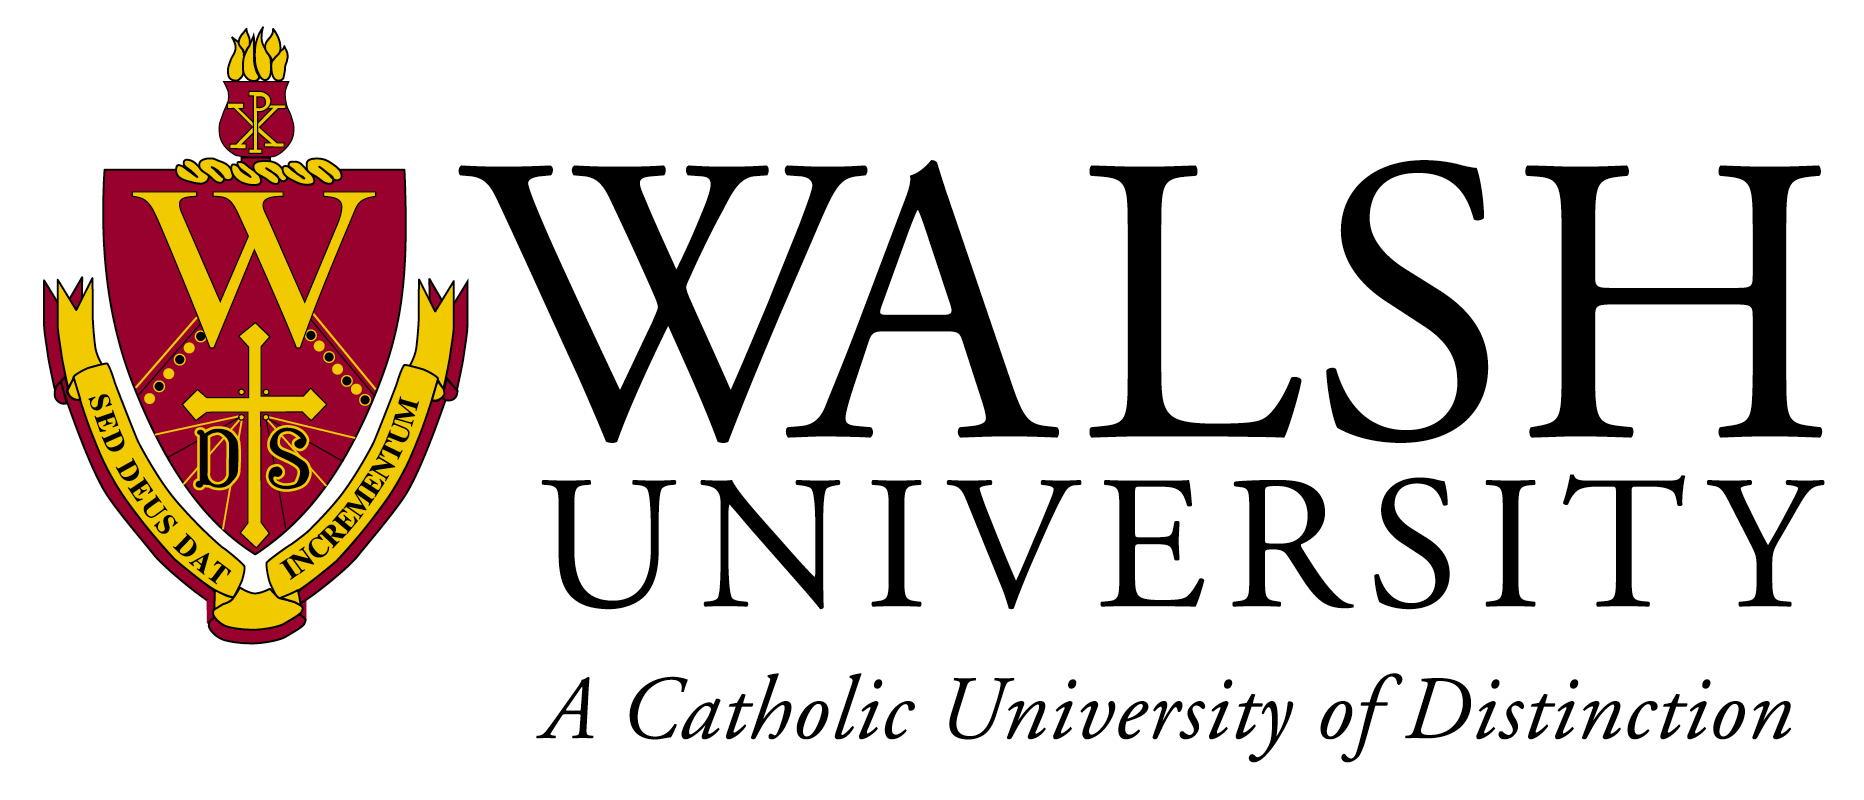 Walsh-University-Official-Logo